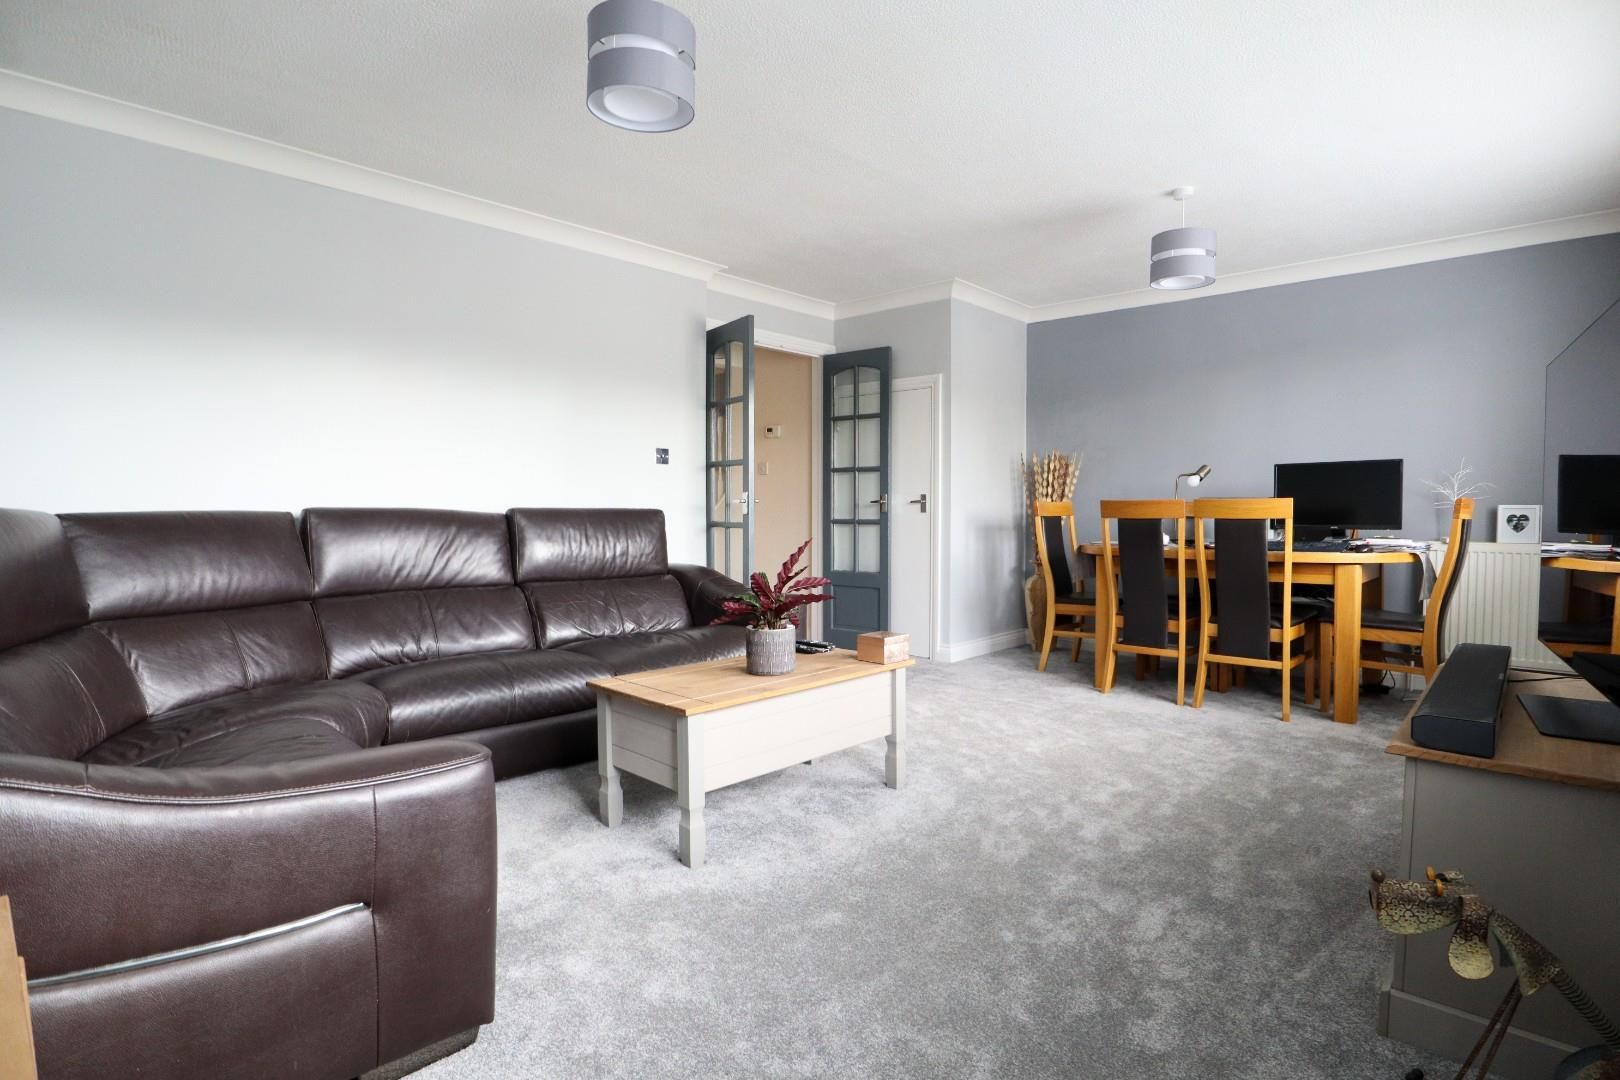 2 bed duplex for sale 2